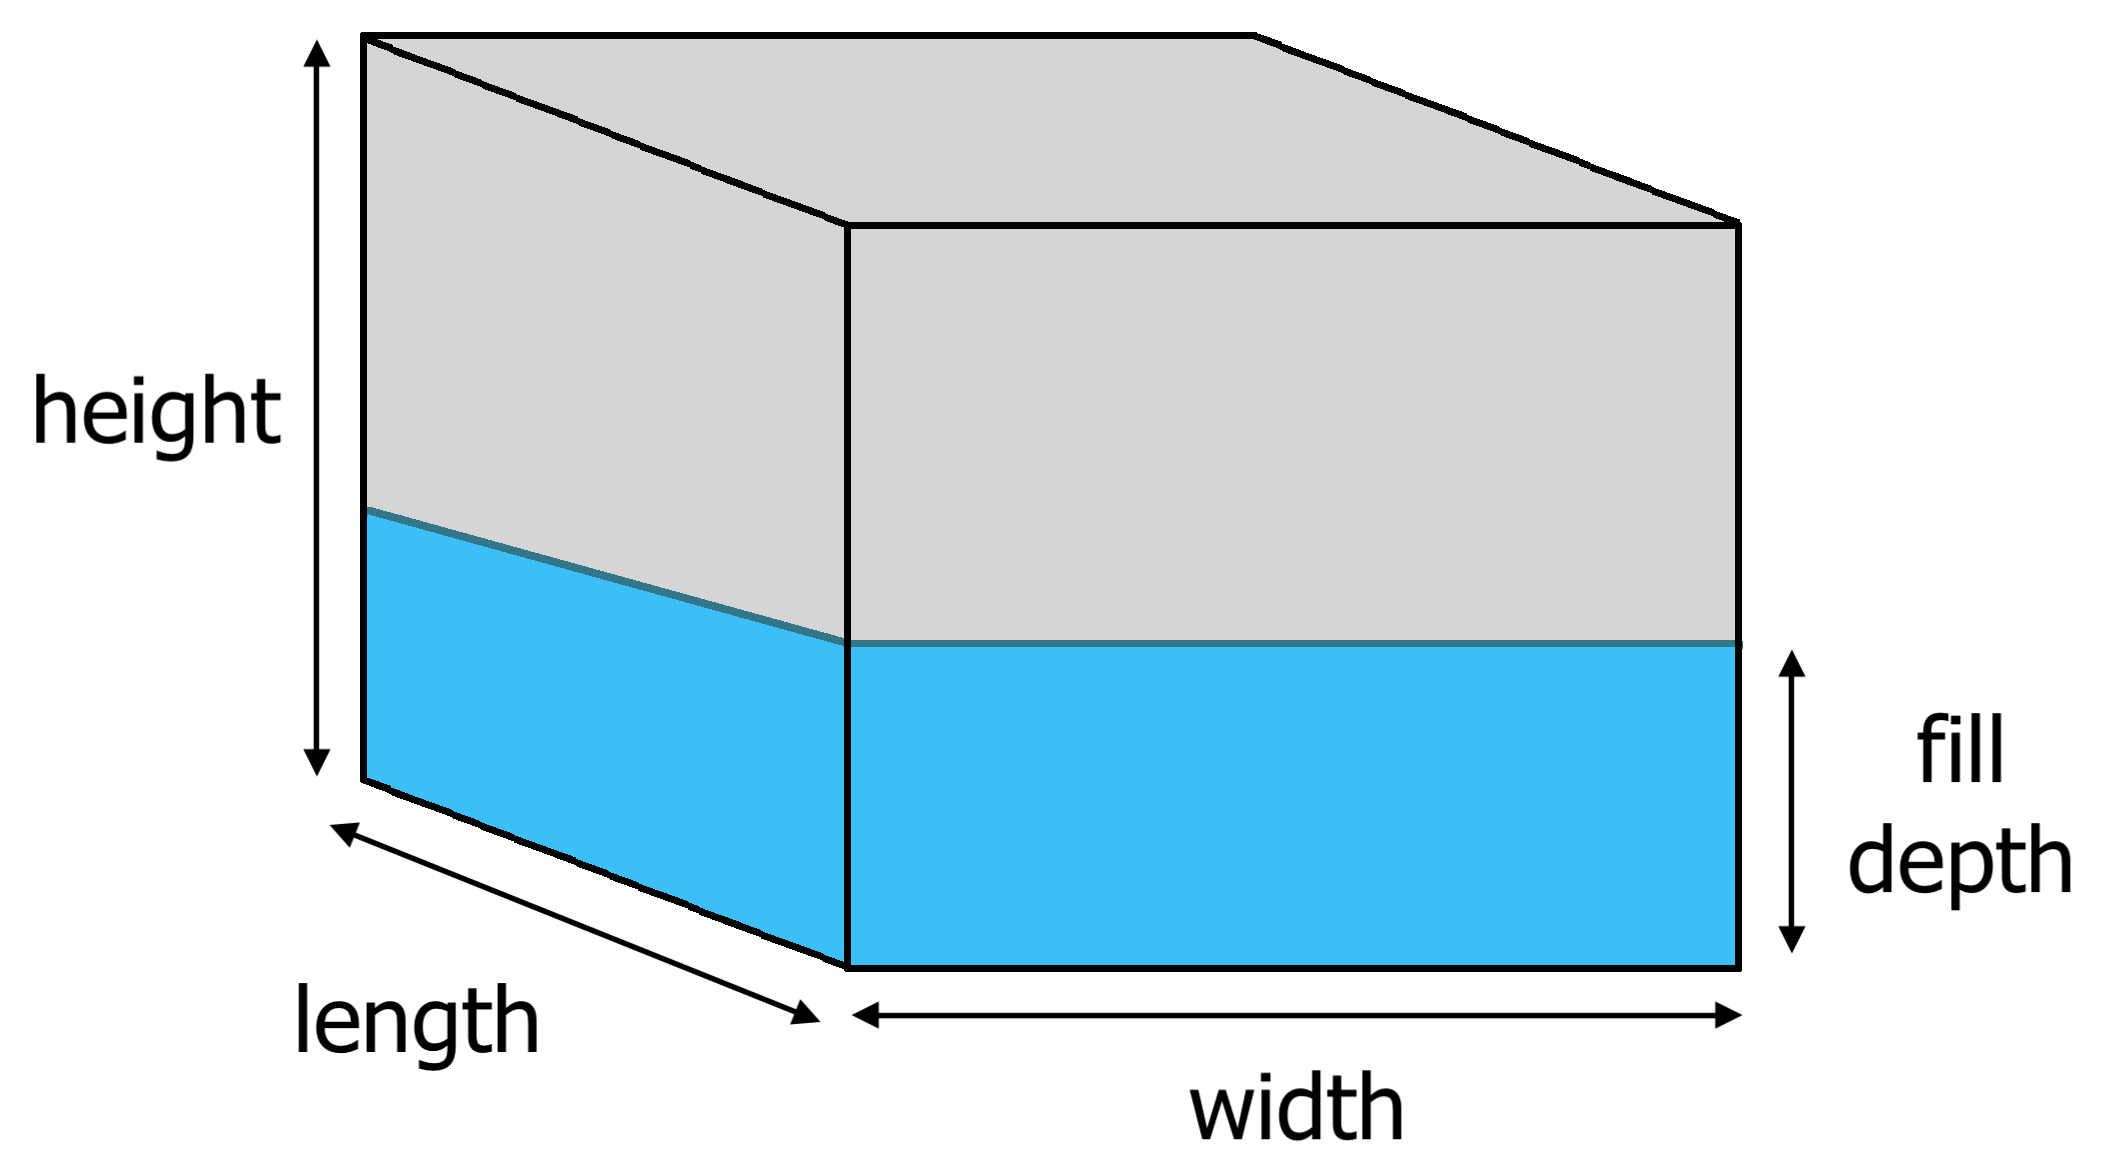 Diagram of a rectangular tank showing the length, width, and height dimensions